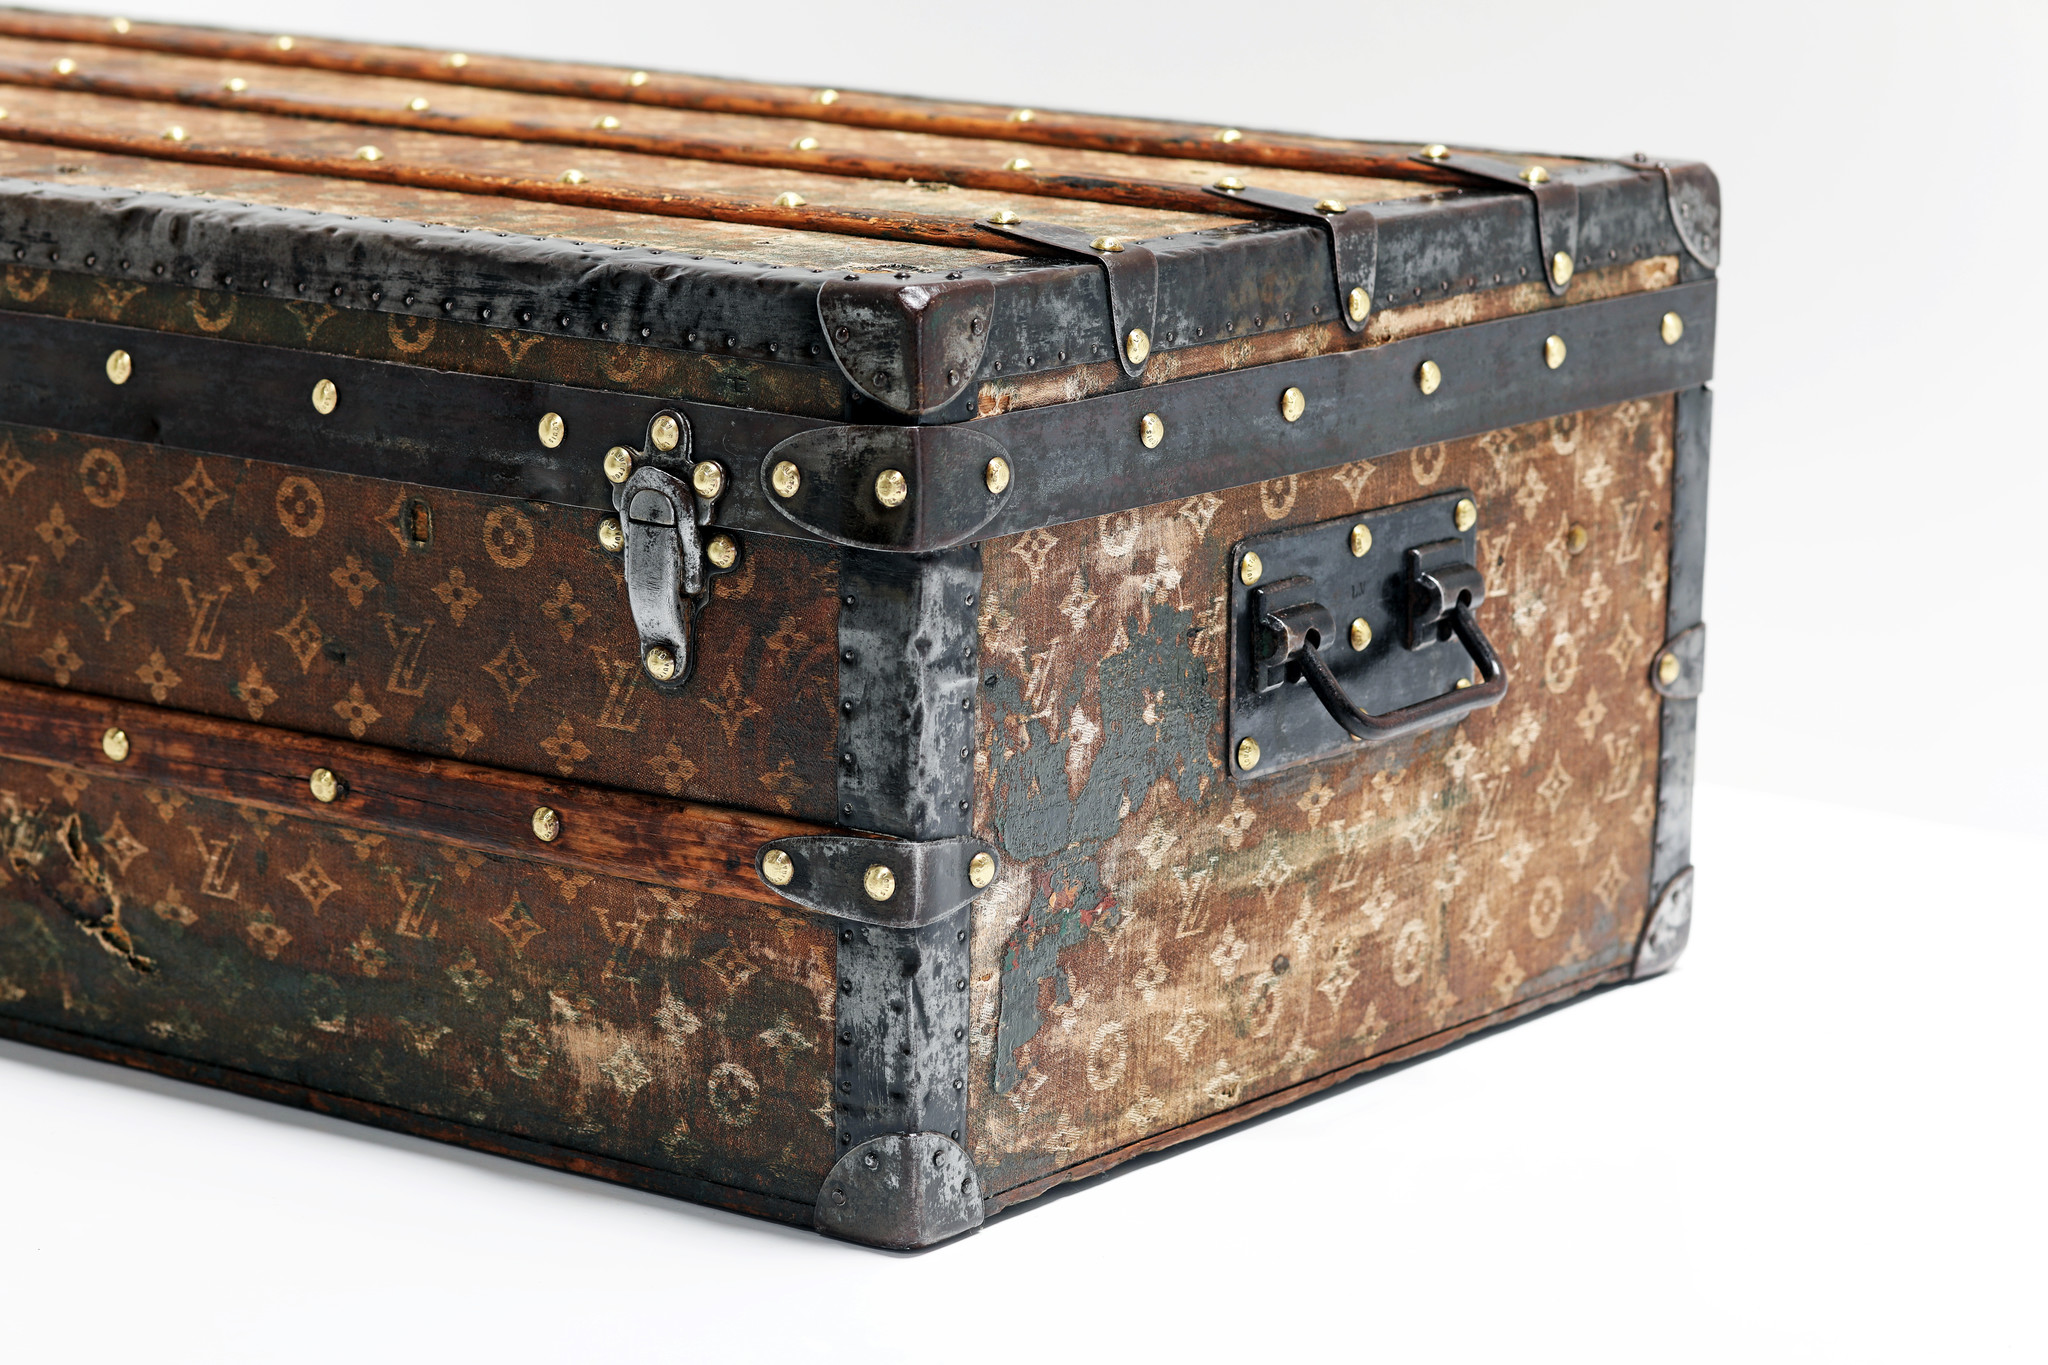 Rare Louis Vuitton trunk, 1896